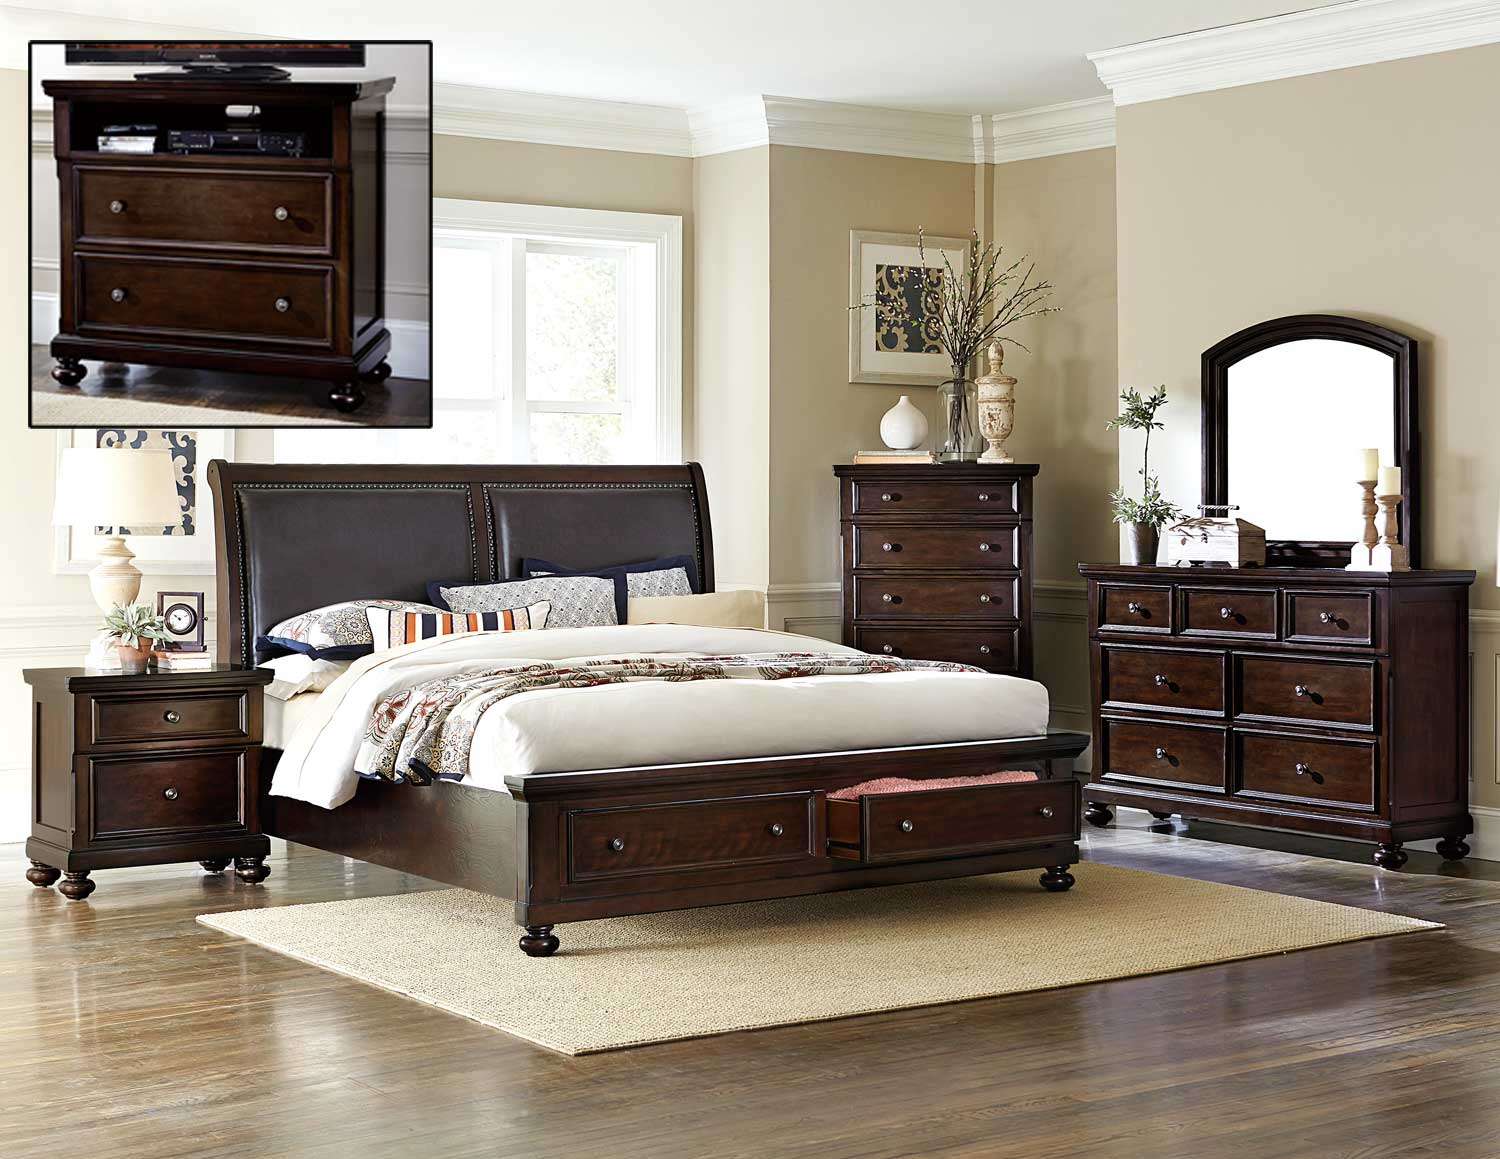 Homelegance Faust Bedroom Set Dark Cherry 1834 BEDROOM SET